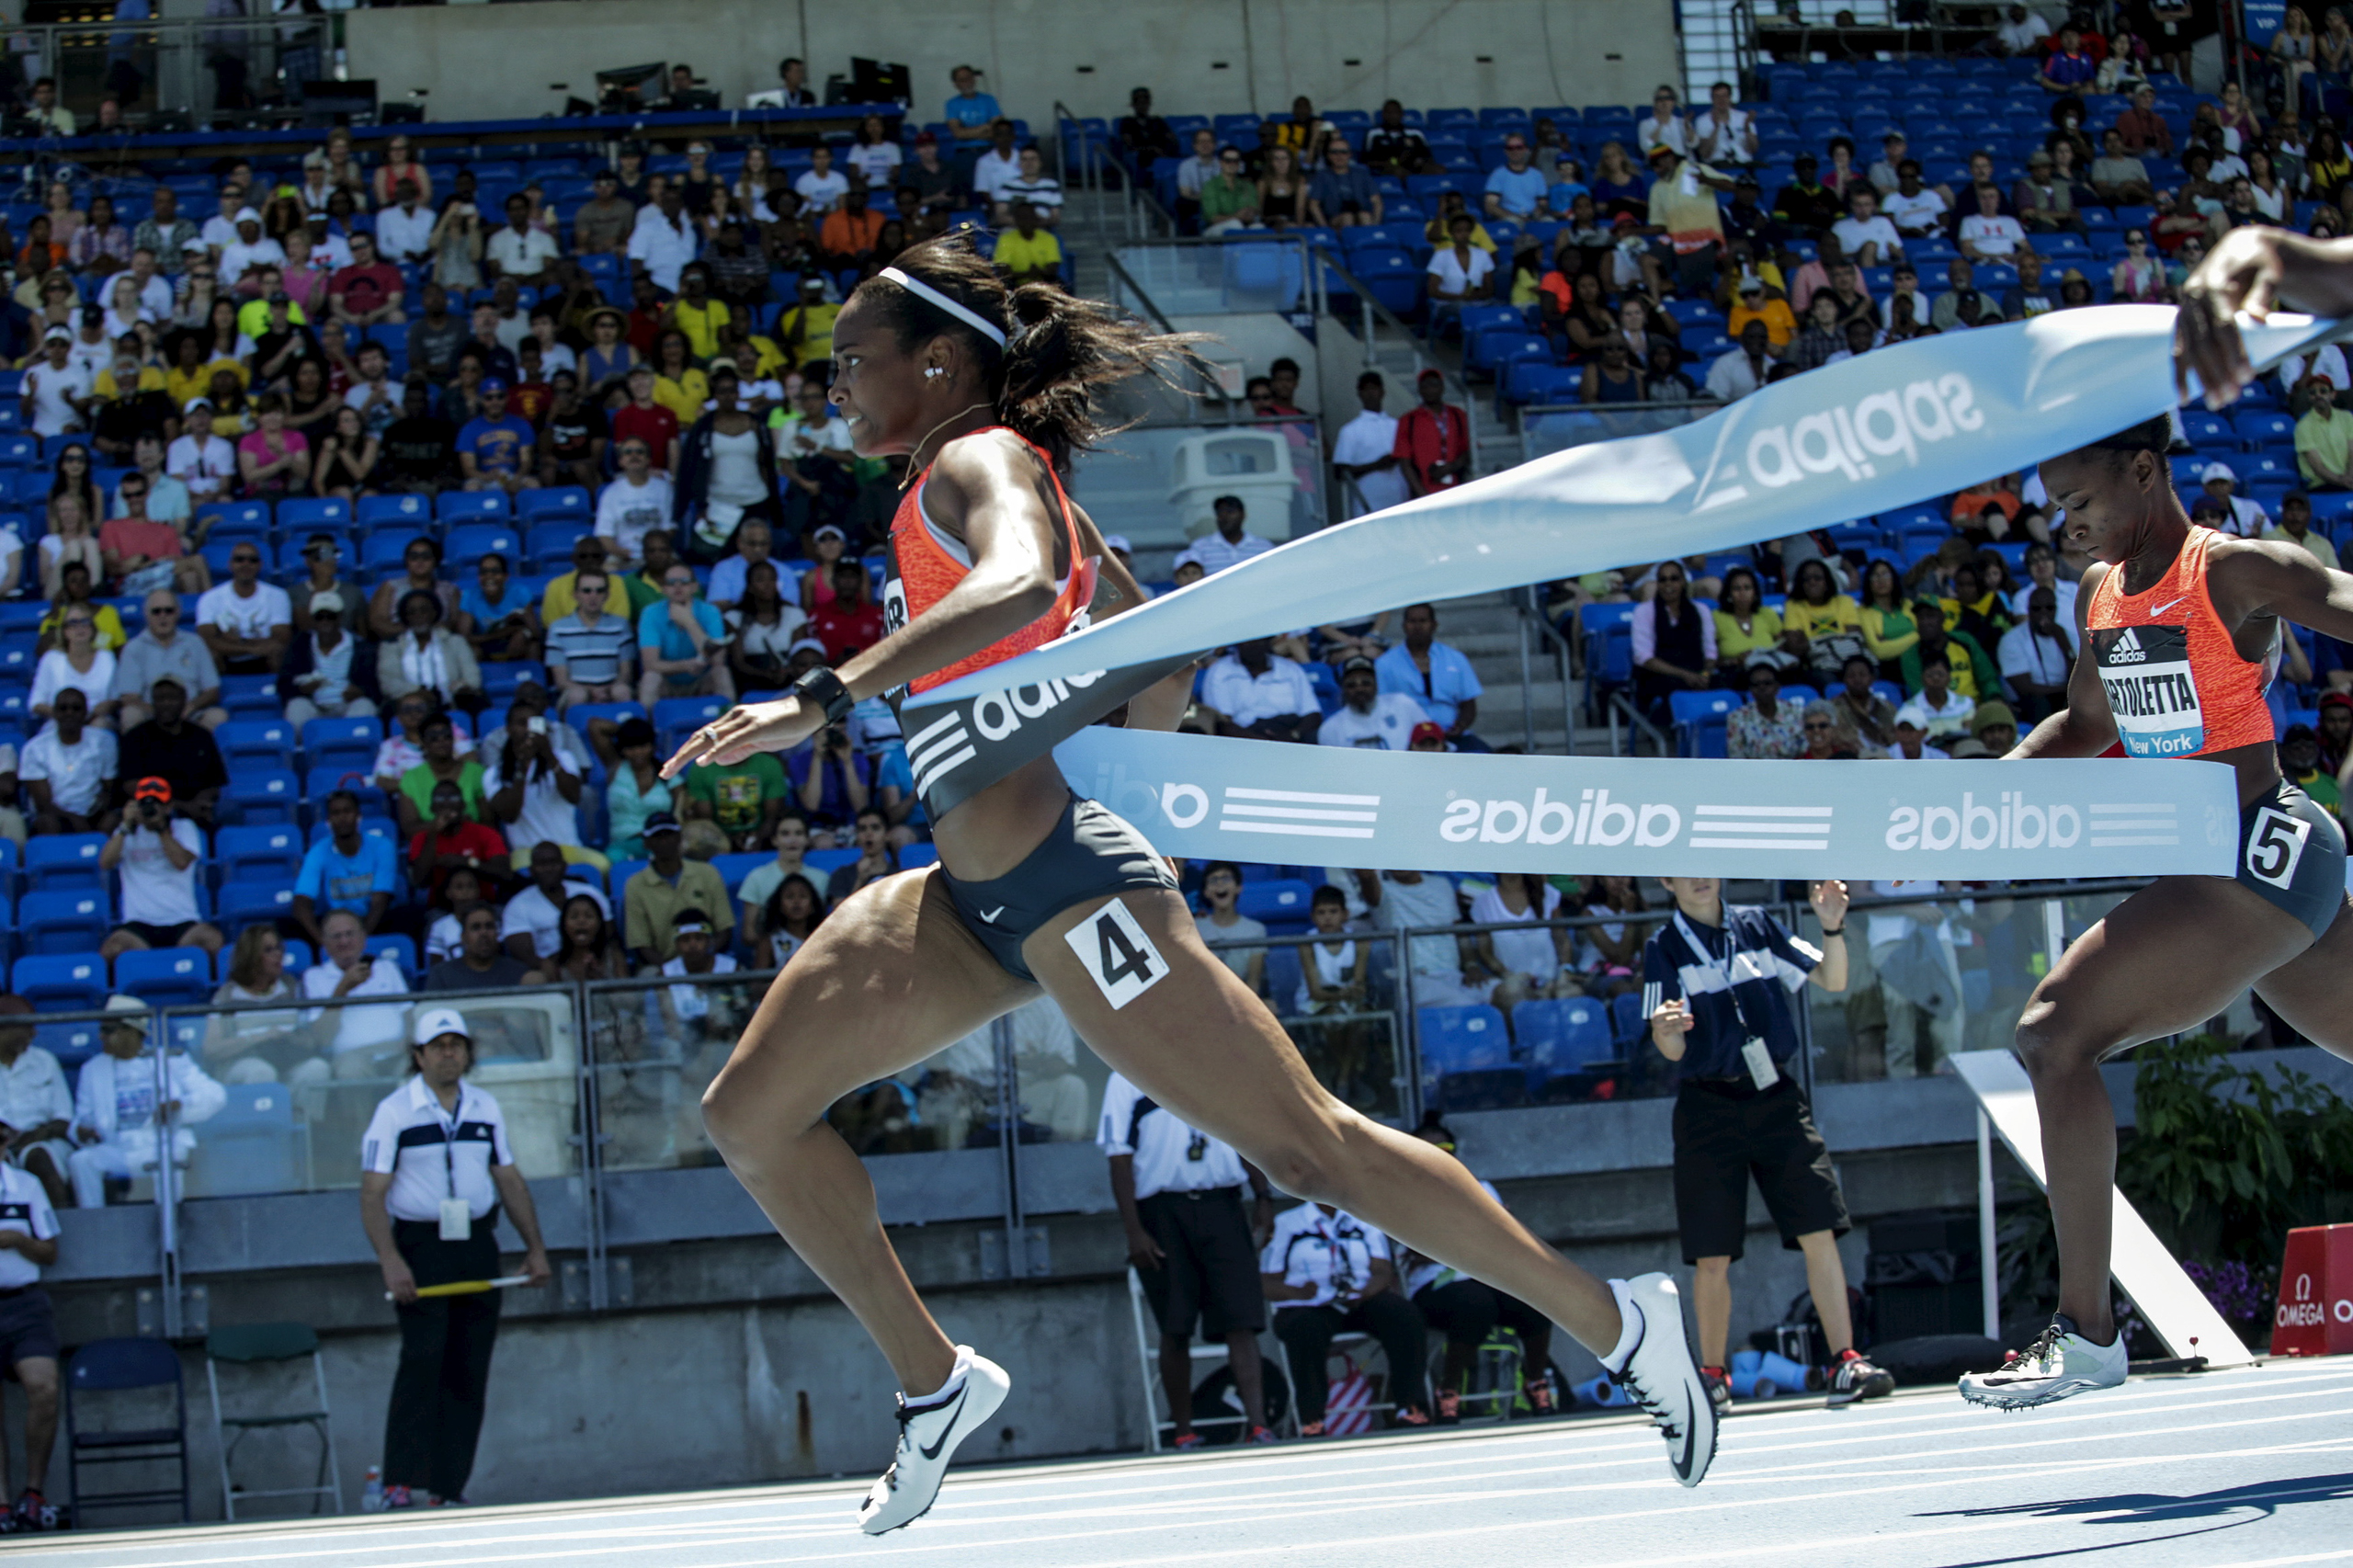 <strong>English Gardner, Track and Field, USA</strong>After tearing her knee in a high school powder-puff-football game, Gardner thought she'd never race again. She's now the fastest woman in the U.S. and a 100-m threat.